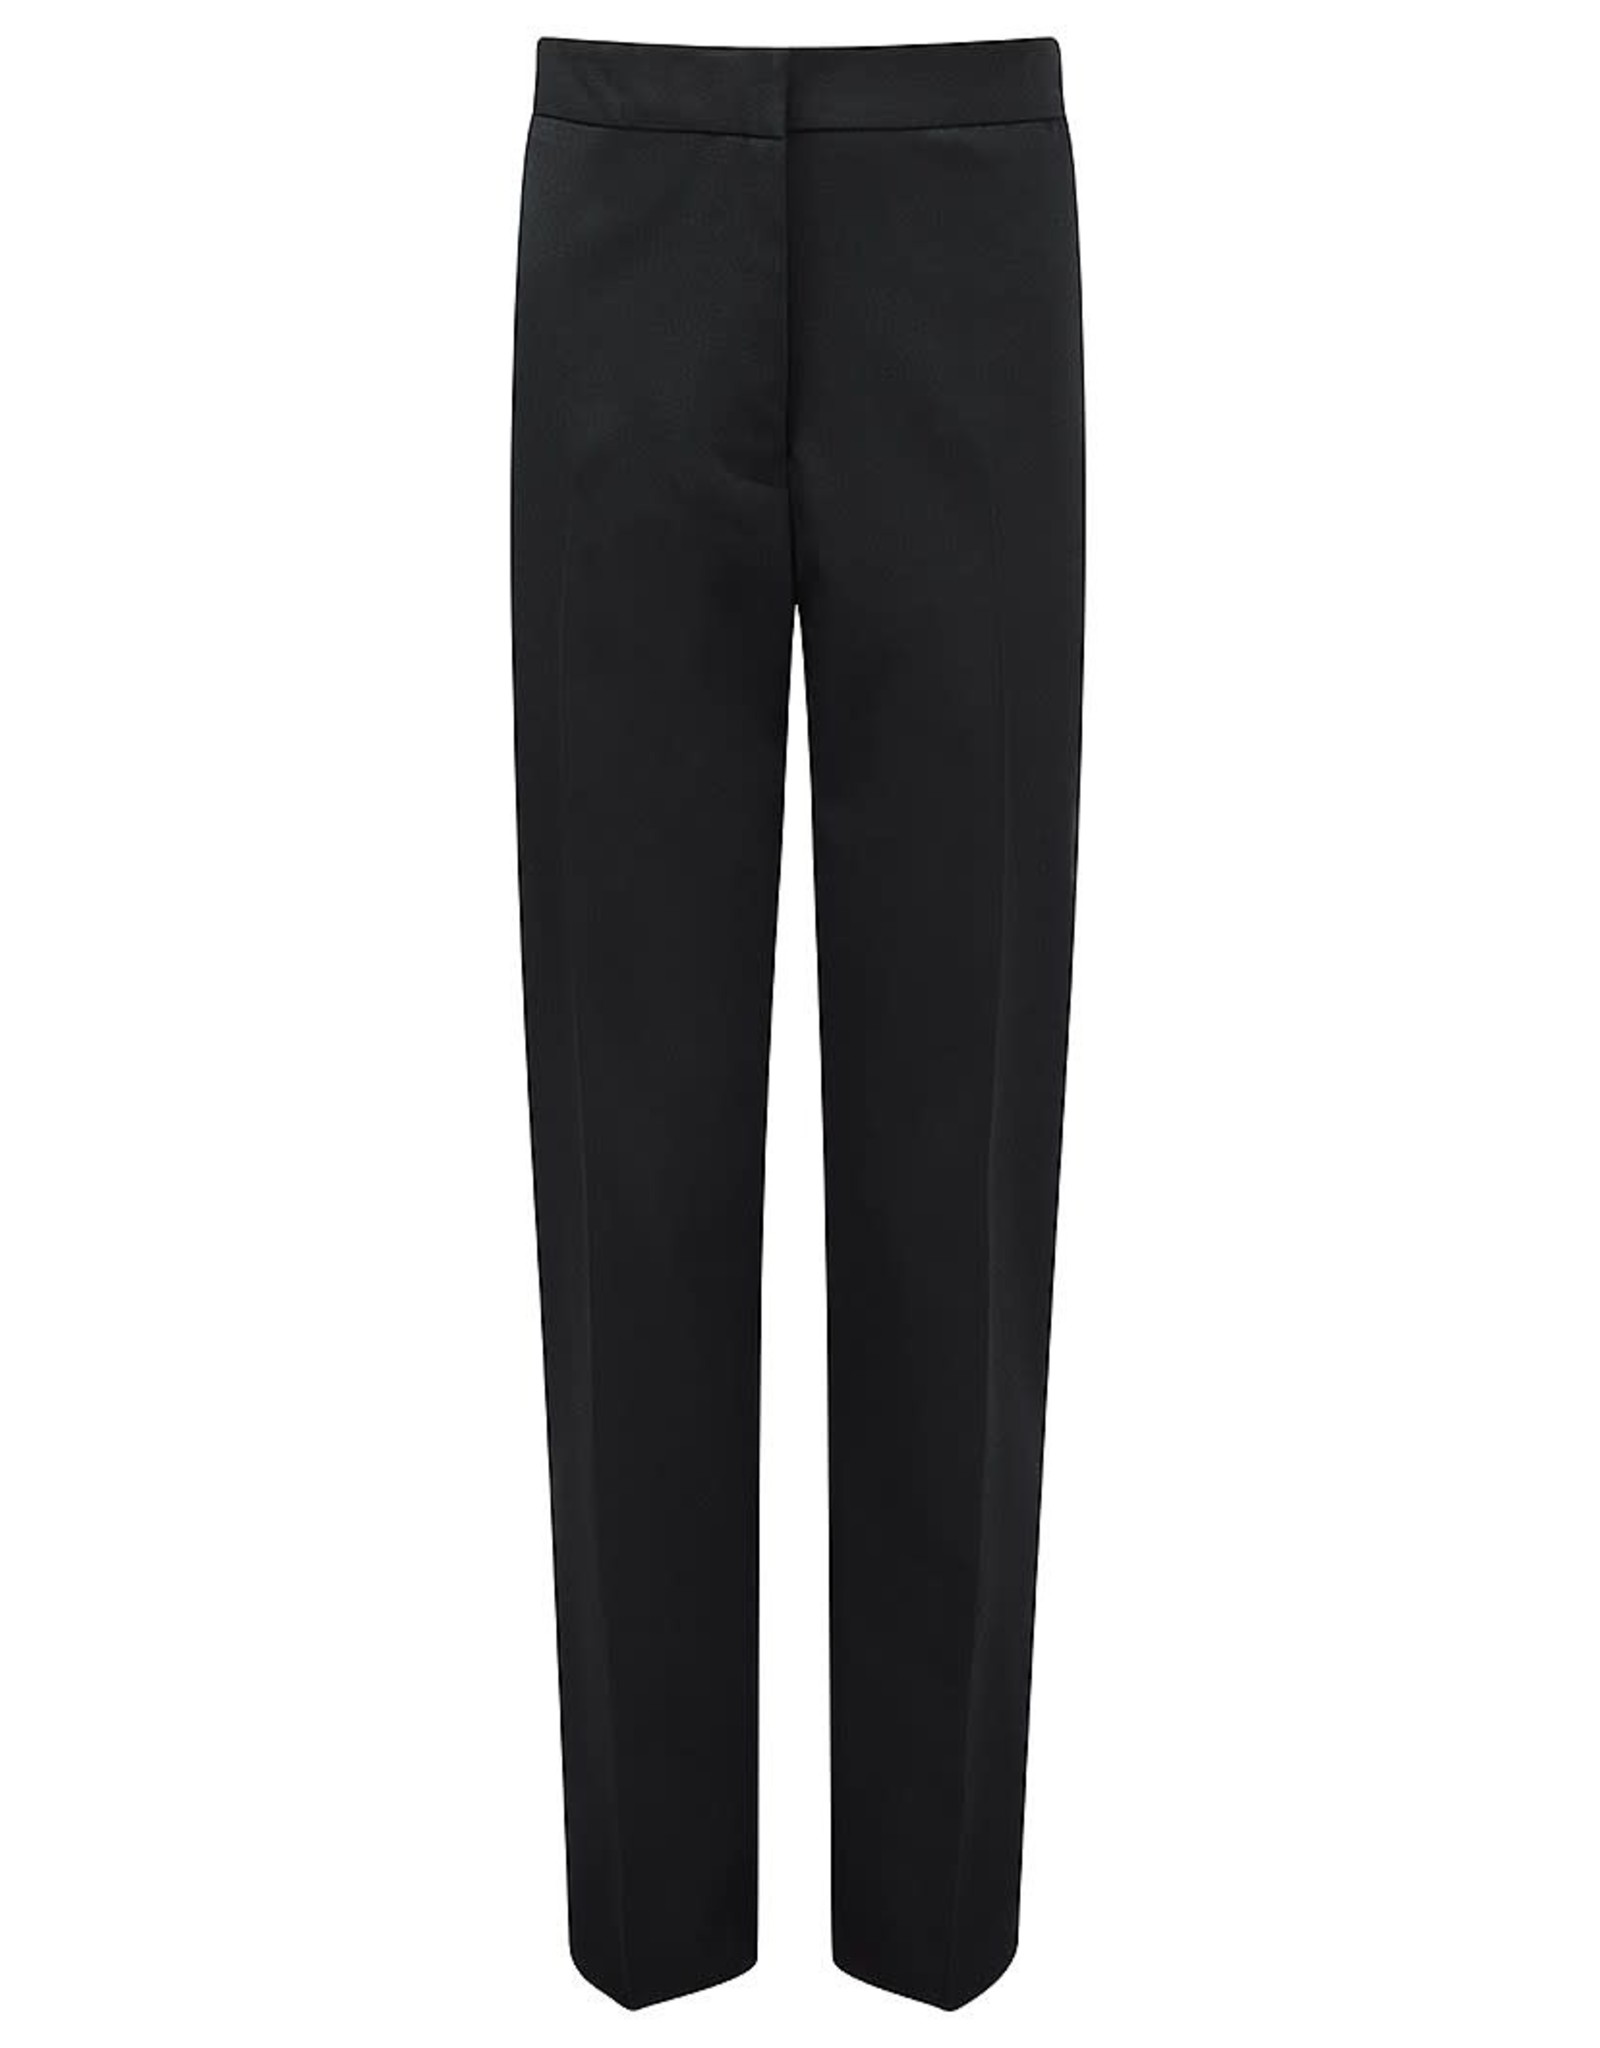 ASPIRE Girls Slimfit Trousers - Child Size-Nicholas Chamberlaine School